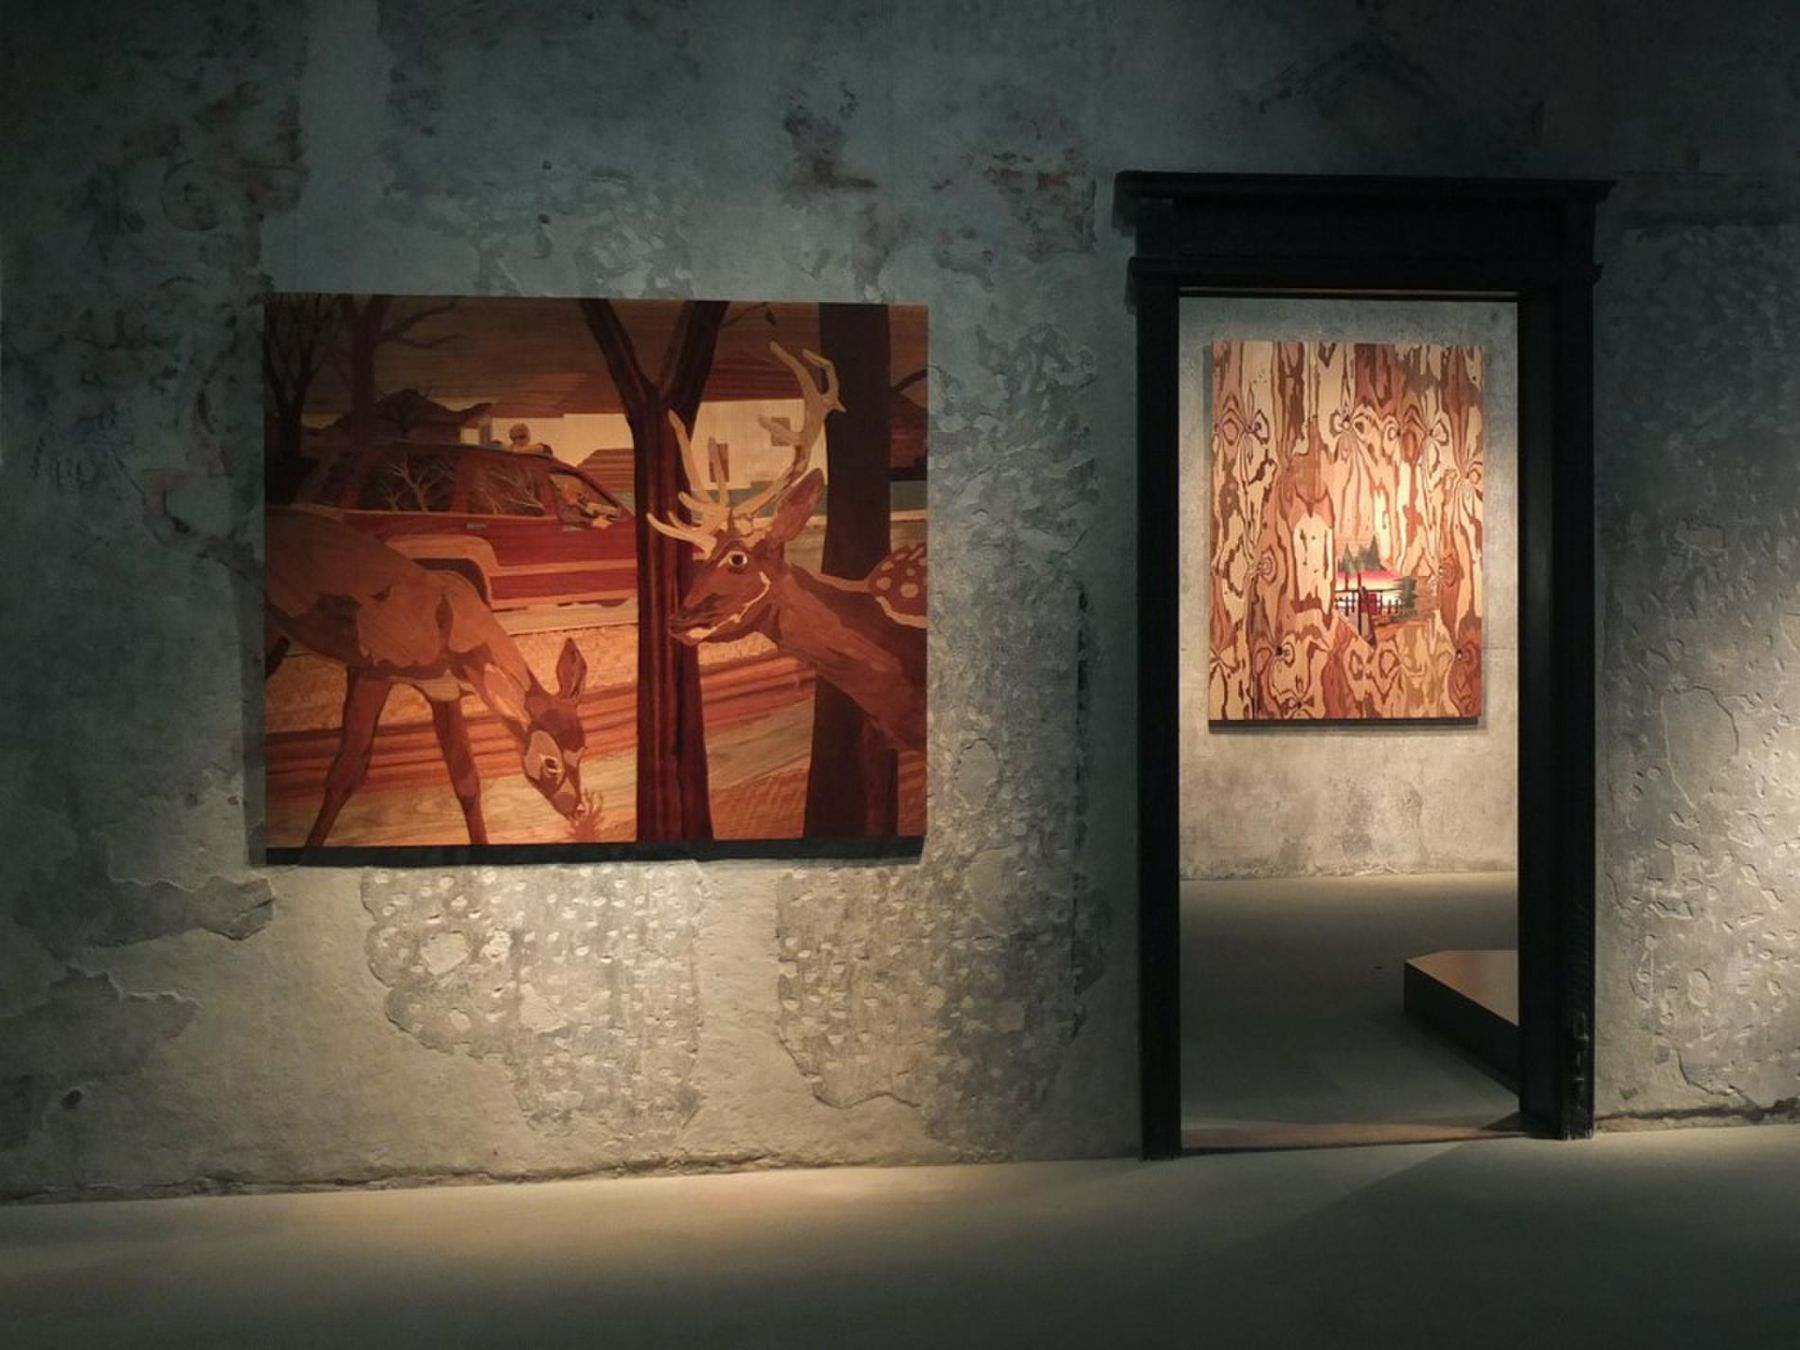 , Exhibition view at Chateau Nyon